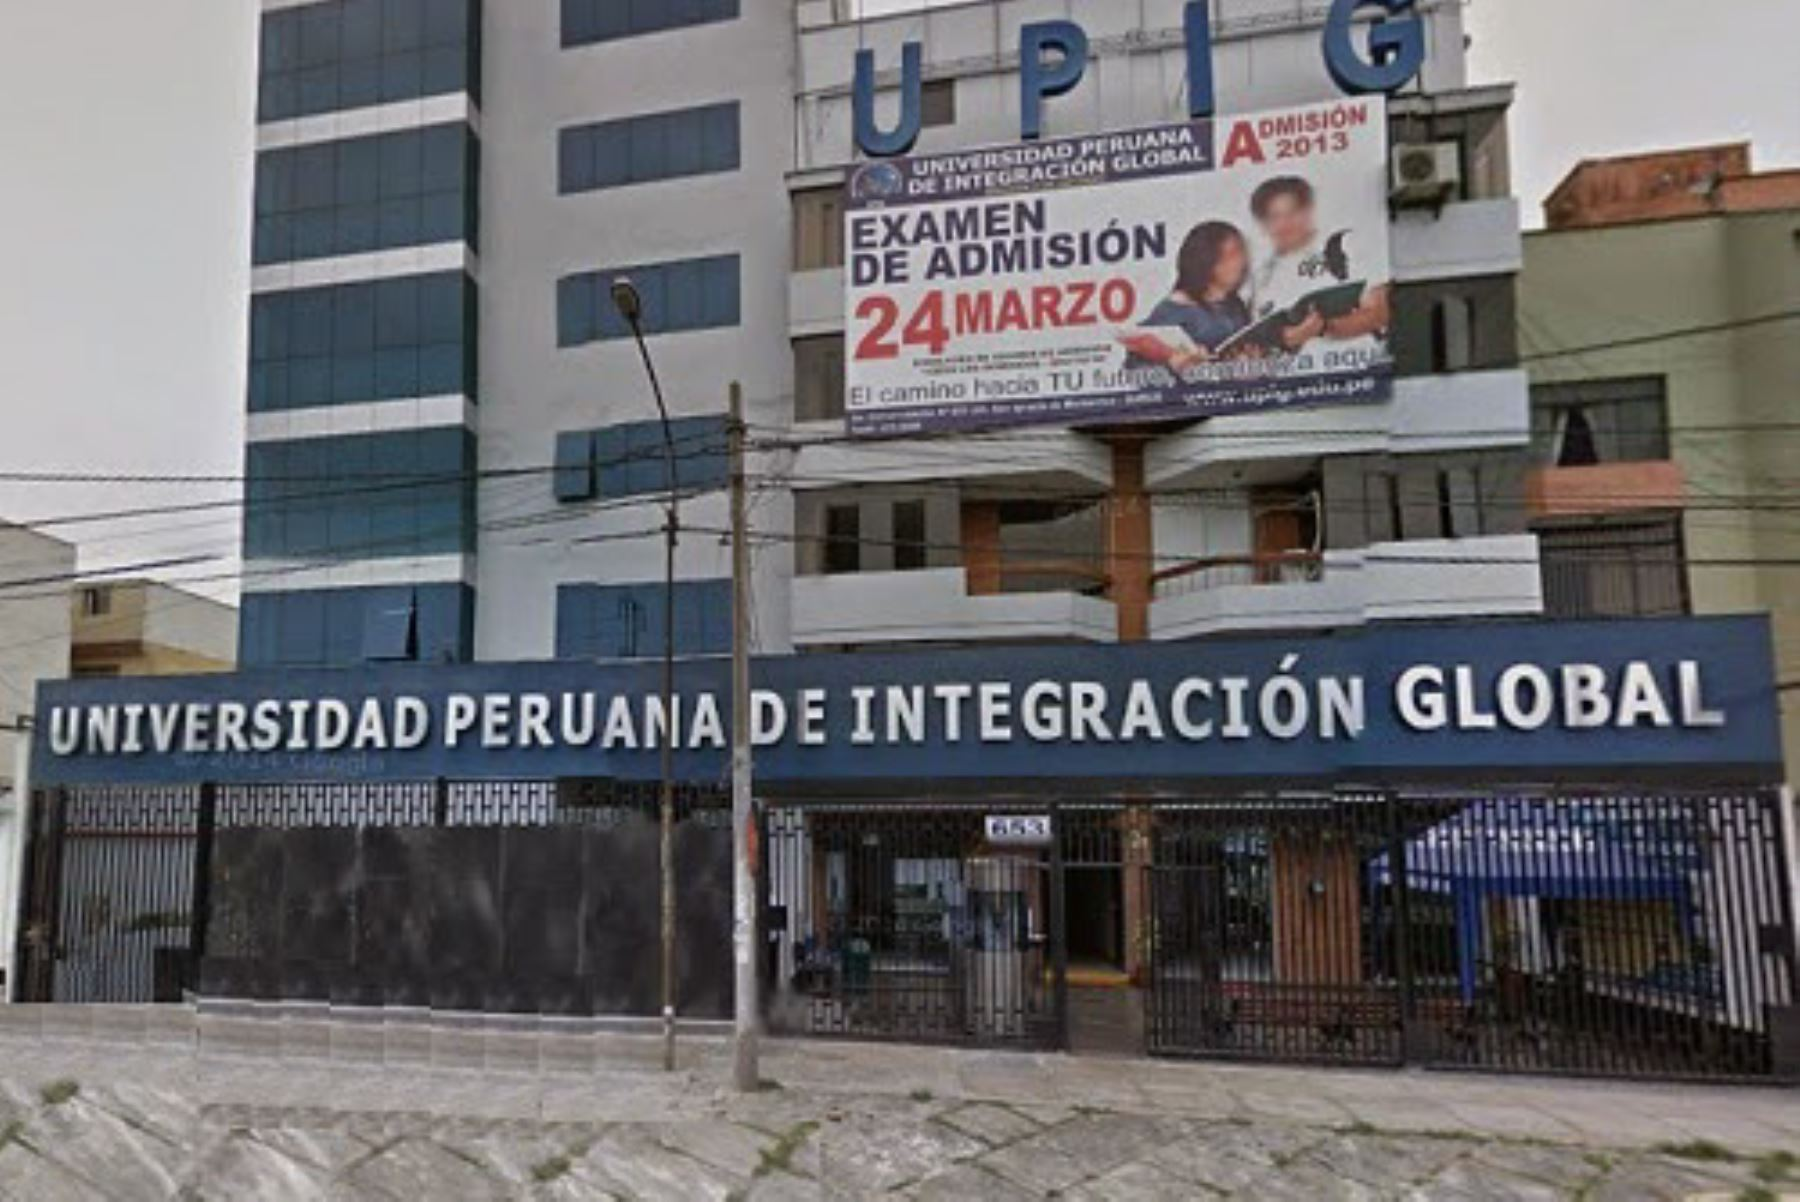 Universidad Peruana de Integración Global. Foto: Internet/Medios.